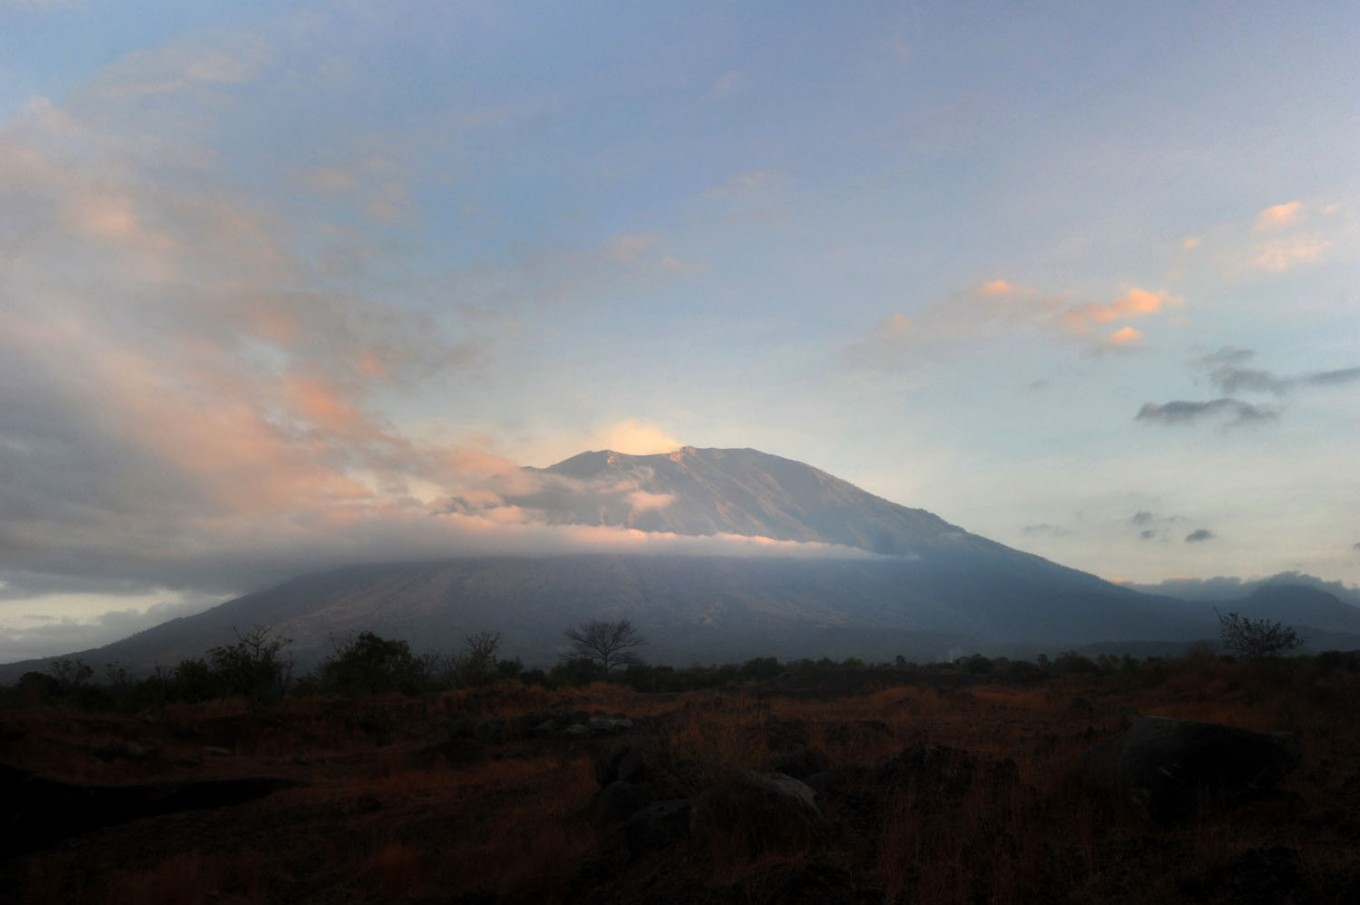 Russian climber found injured on Bali's rumbling volcano